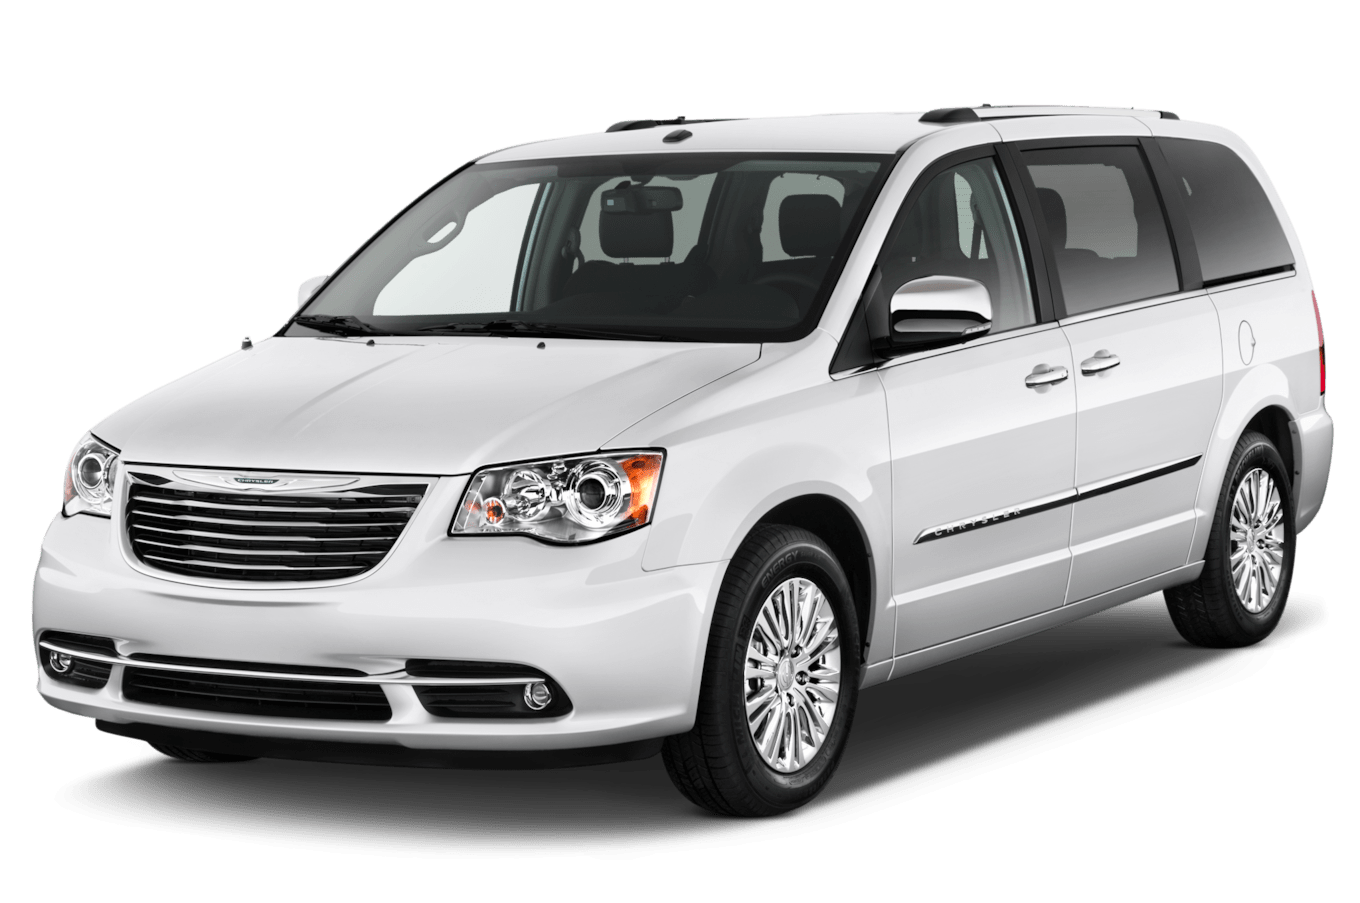 new 2012 dodge caravan and chrysler town country 36 fuse box 2012 chrysler town and country fuse box diagram 2012 chrysler town and country fuse box [ 392:261 x 1360 Pixel ]